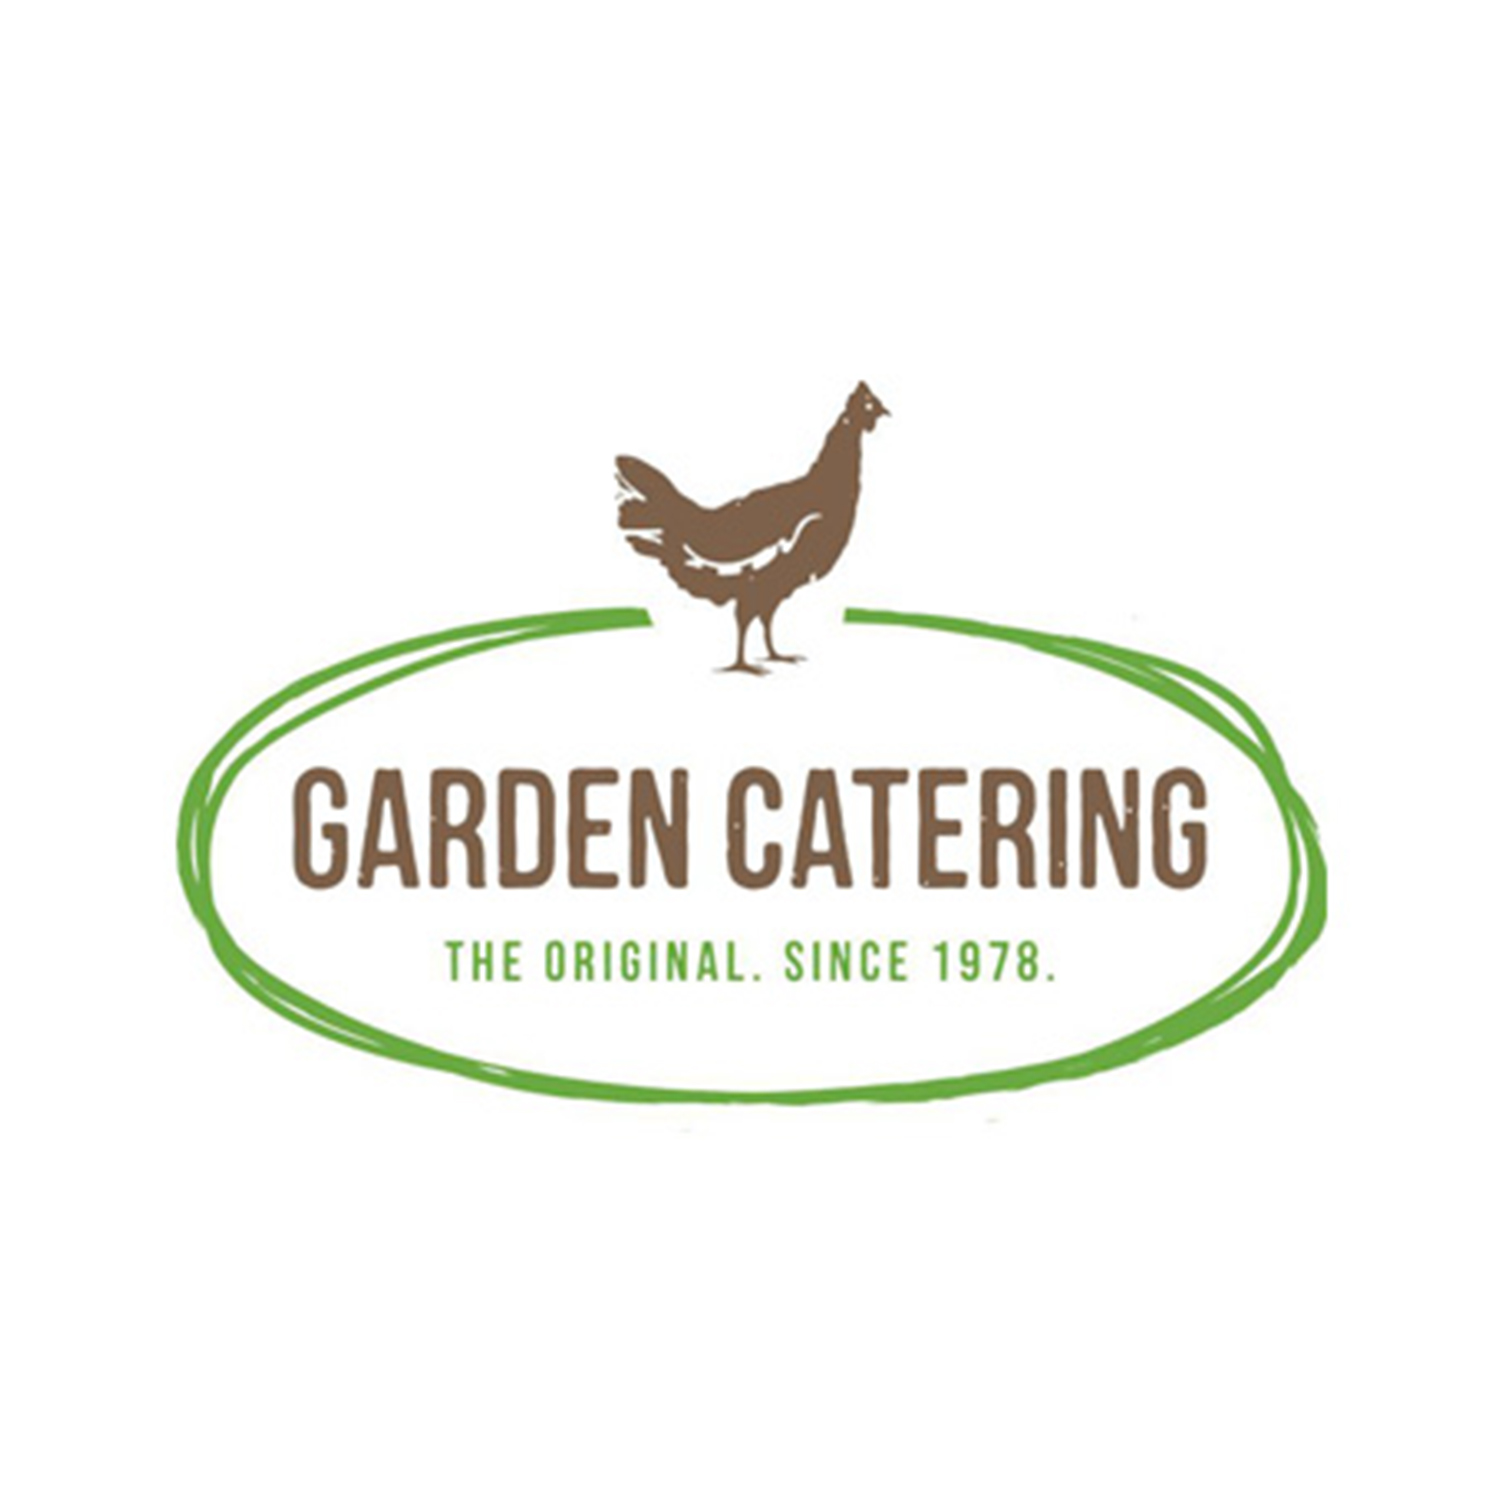 Garden Catering : Famous hand-cut, hand-made chicken nuggets for four generations.